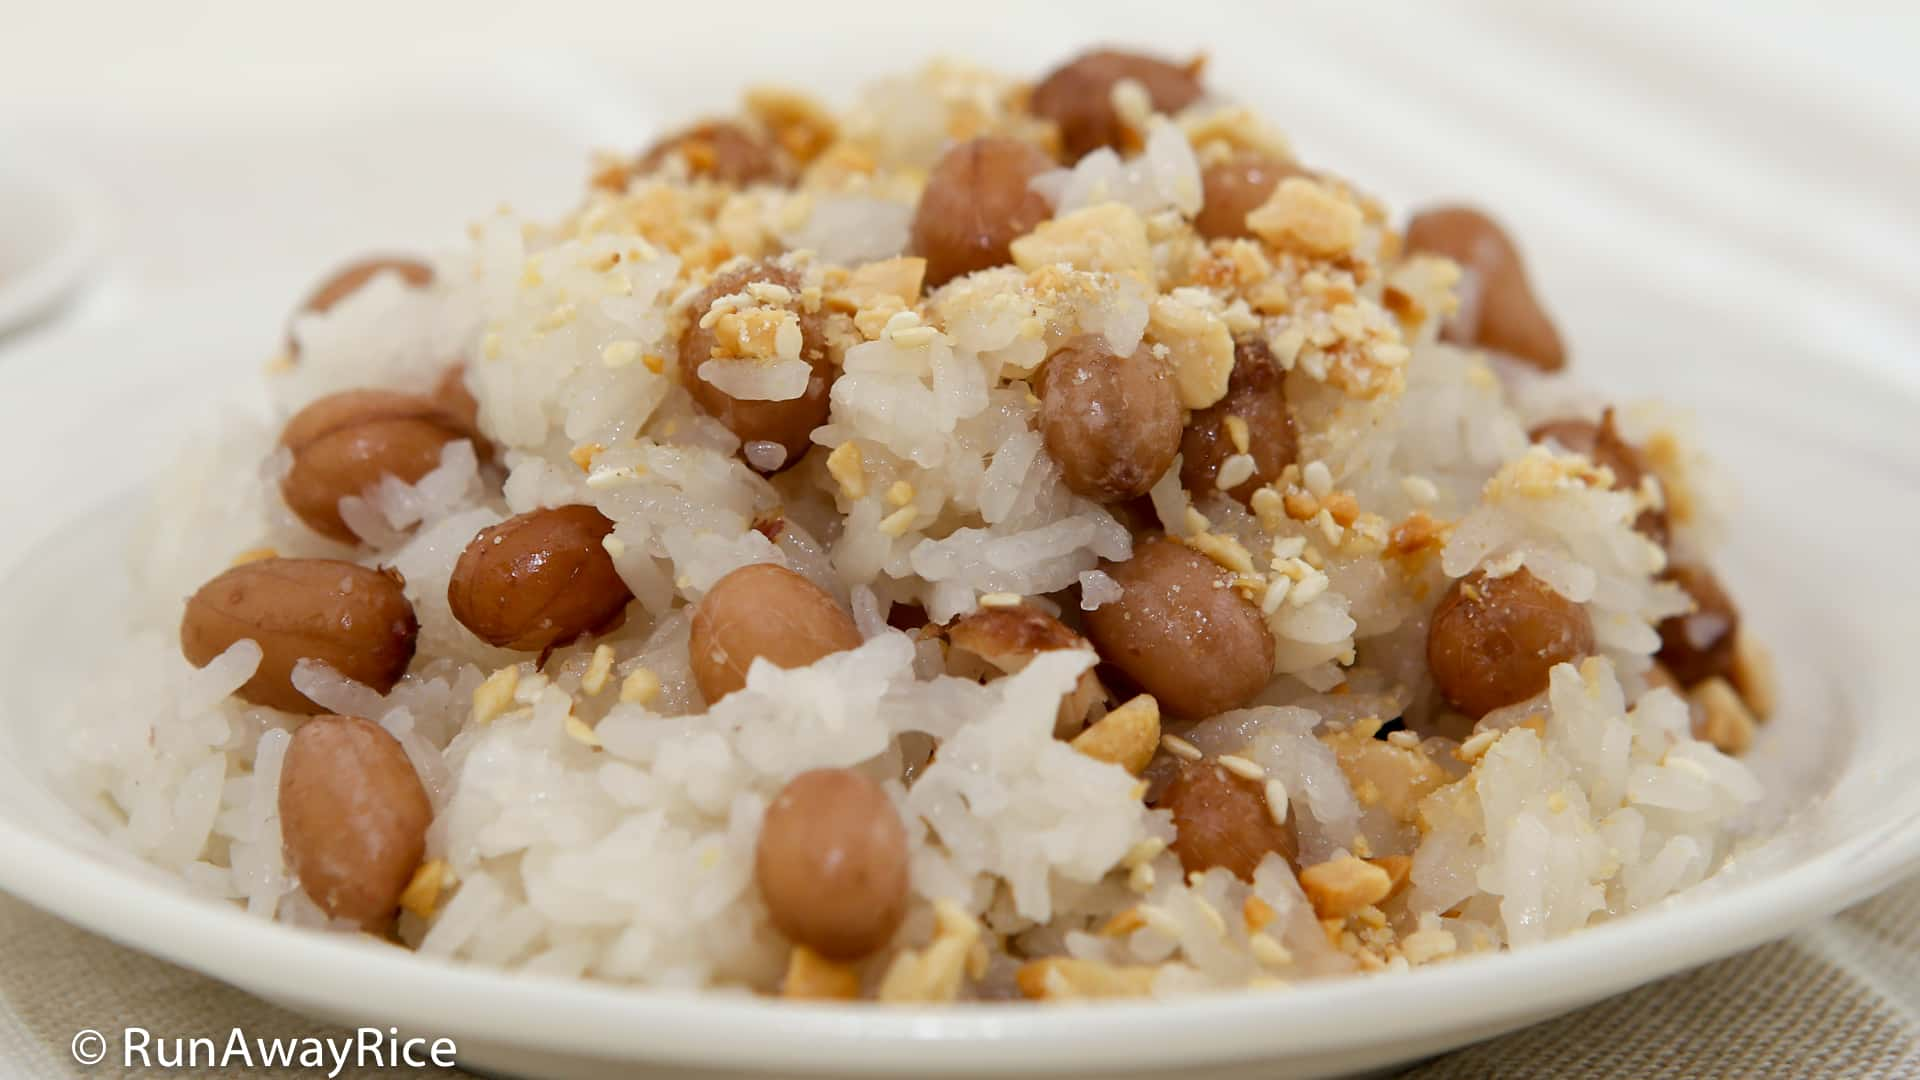 Sticky Rice and Peanuts (Xoi Dau Phong) - delicious and healthy breakfast! | recipe from runawayrice.com